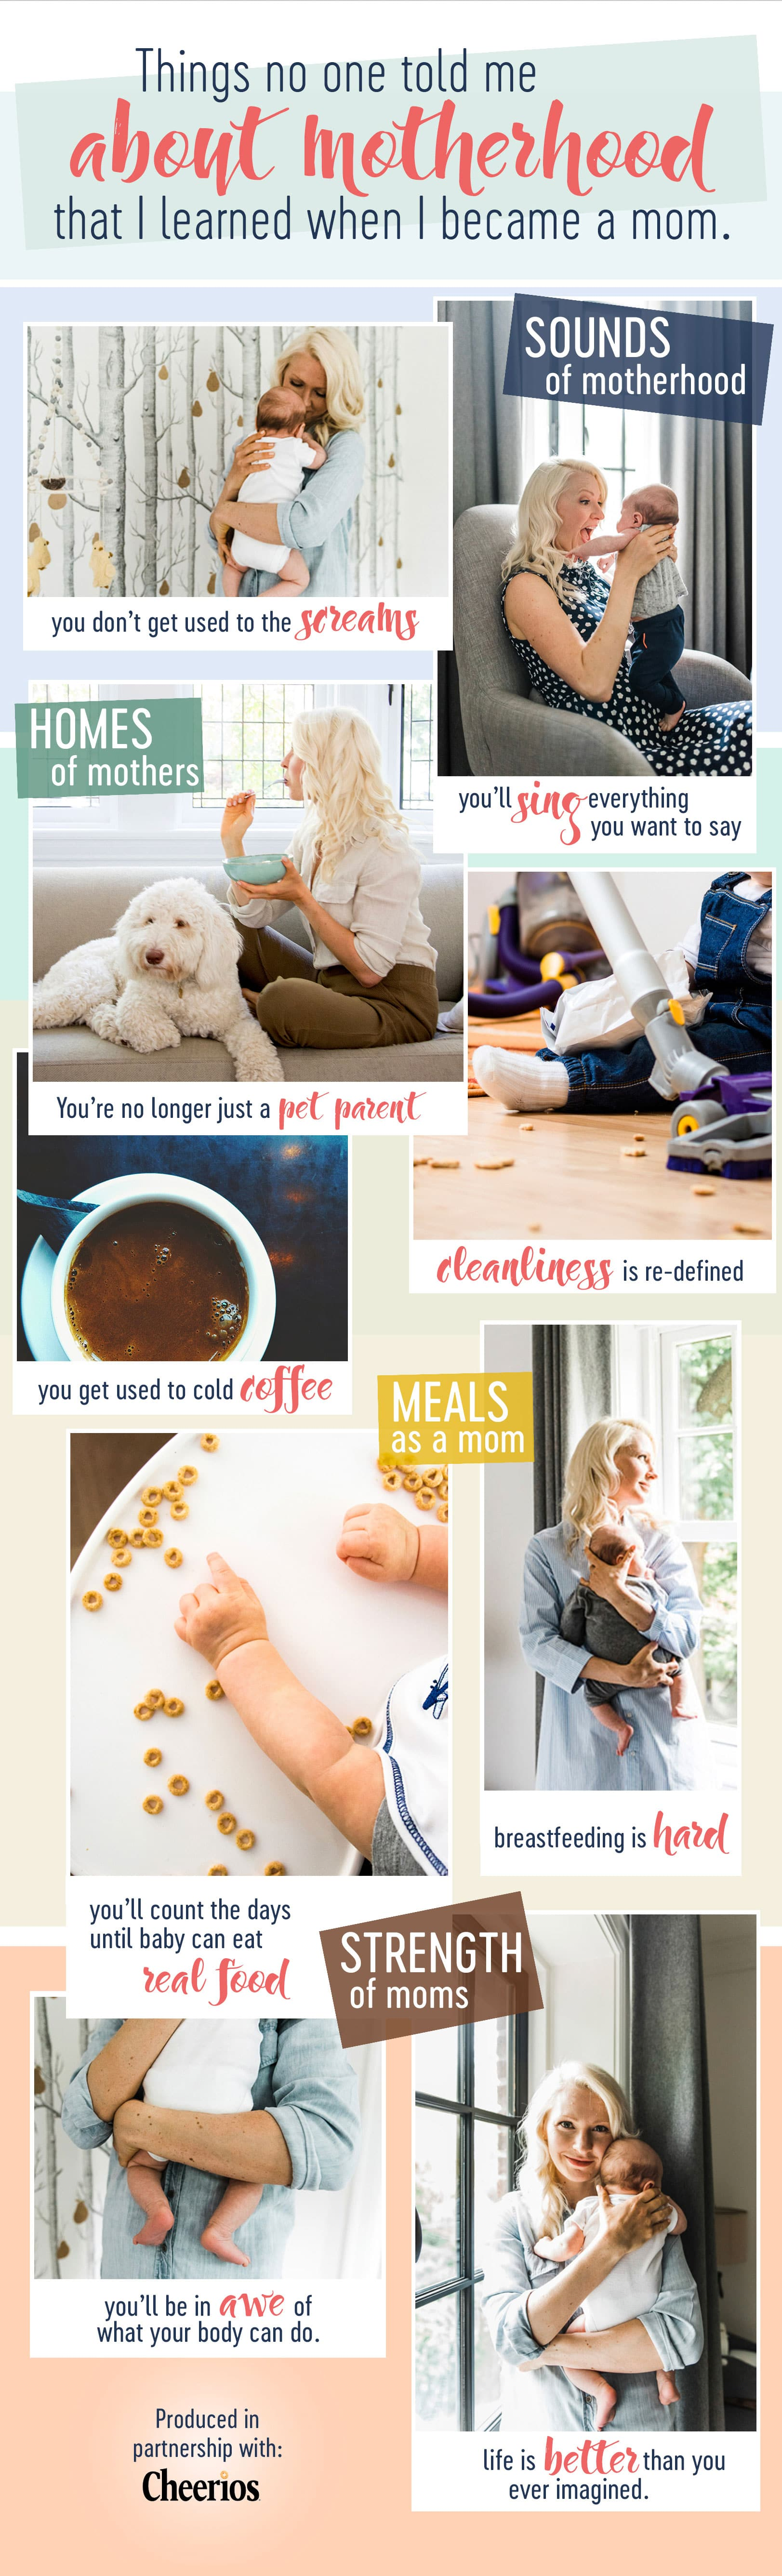 I share the things no one told me about motherhood that I learned when I became a mom in this funny, candid and true tell-all. #abbeyskitchen #motherhood